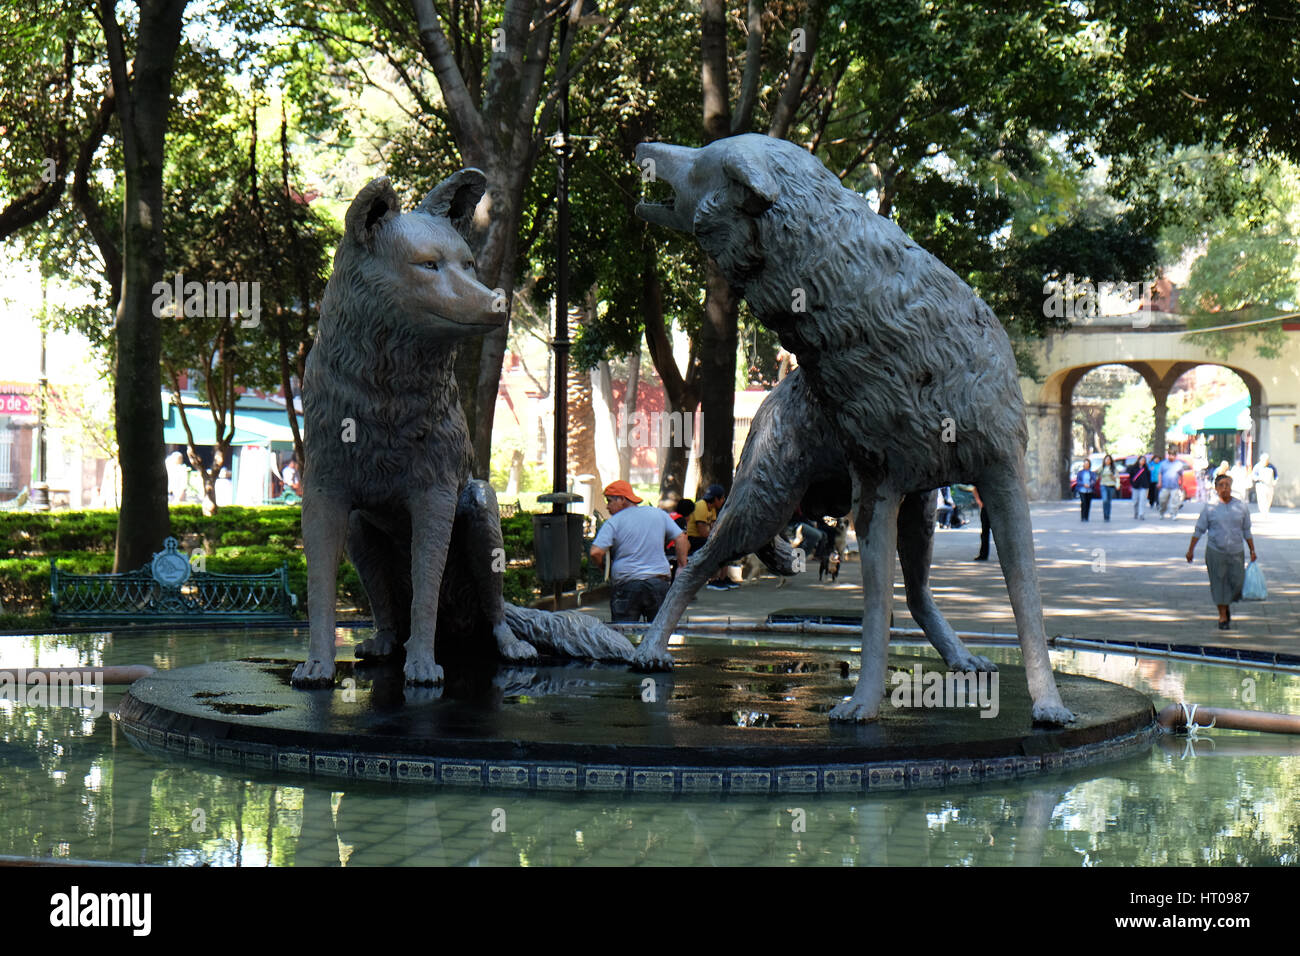 The Coyotes Fountain located at the Jardin Centenario of Coyoacan, Mexico City - Stock Image